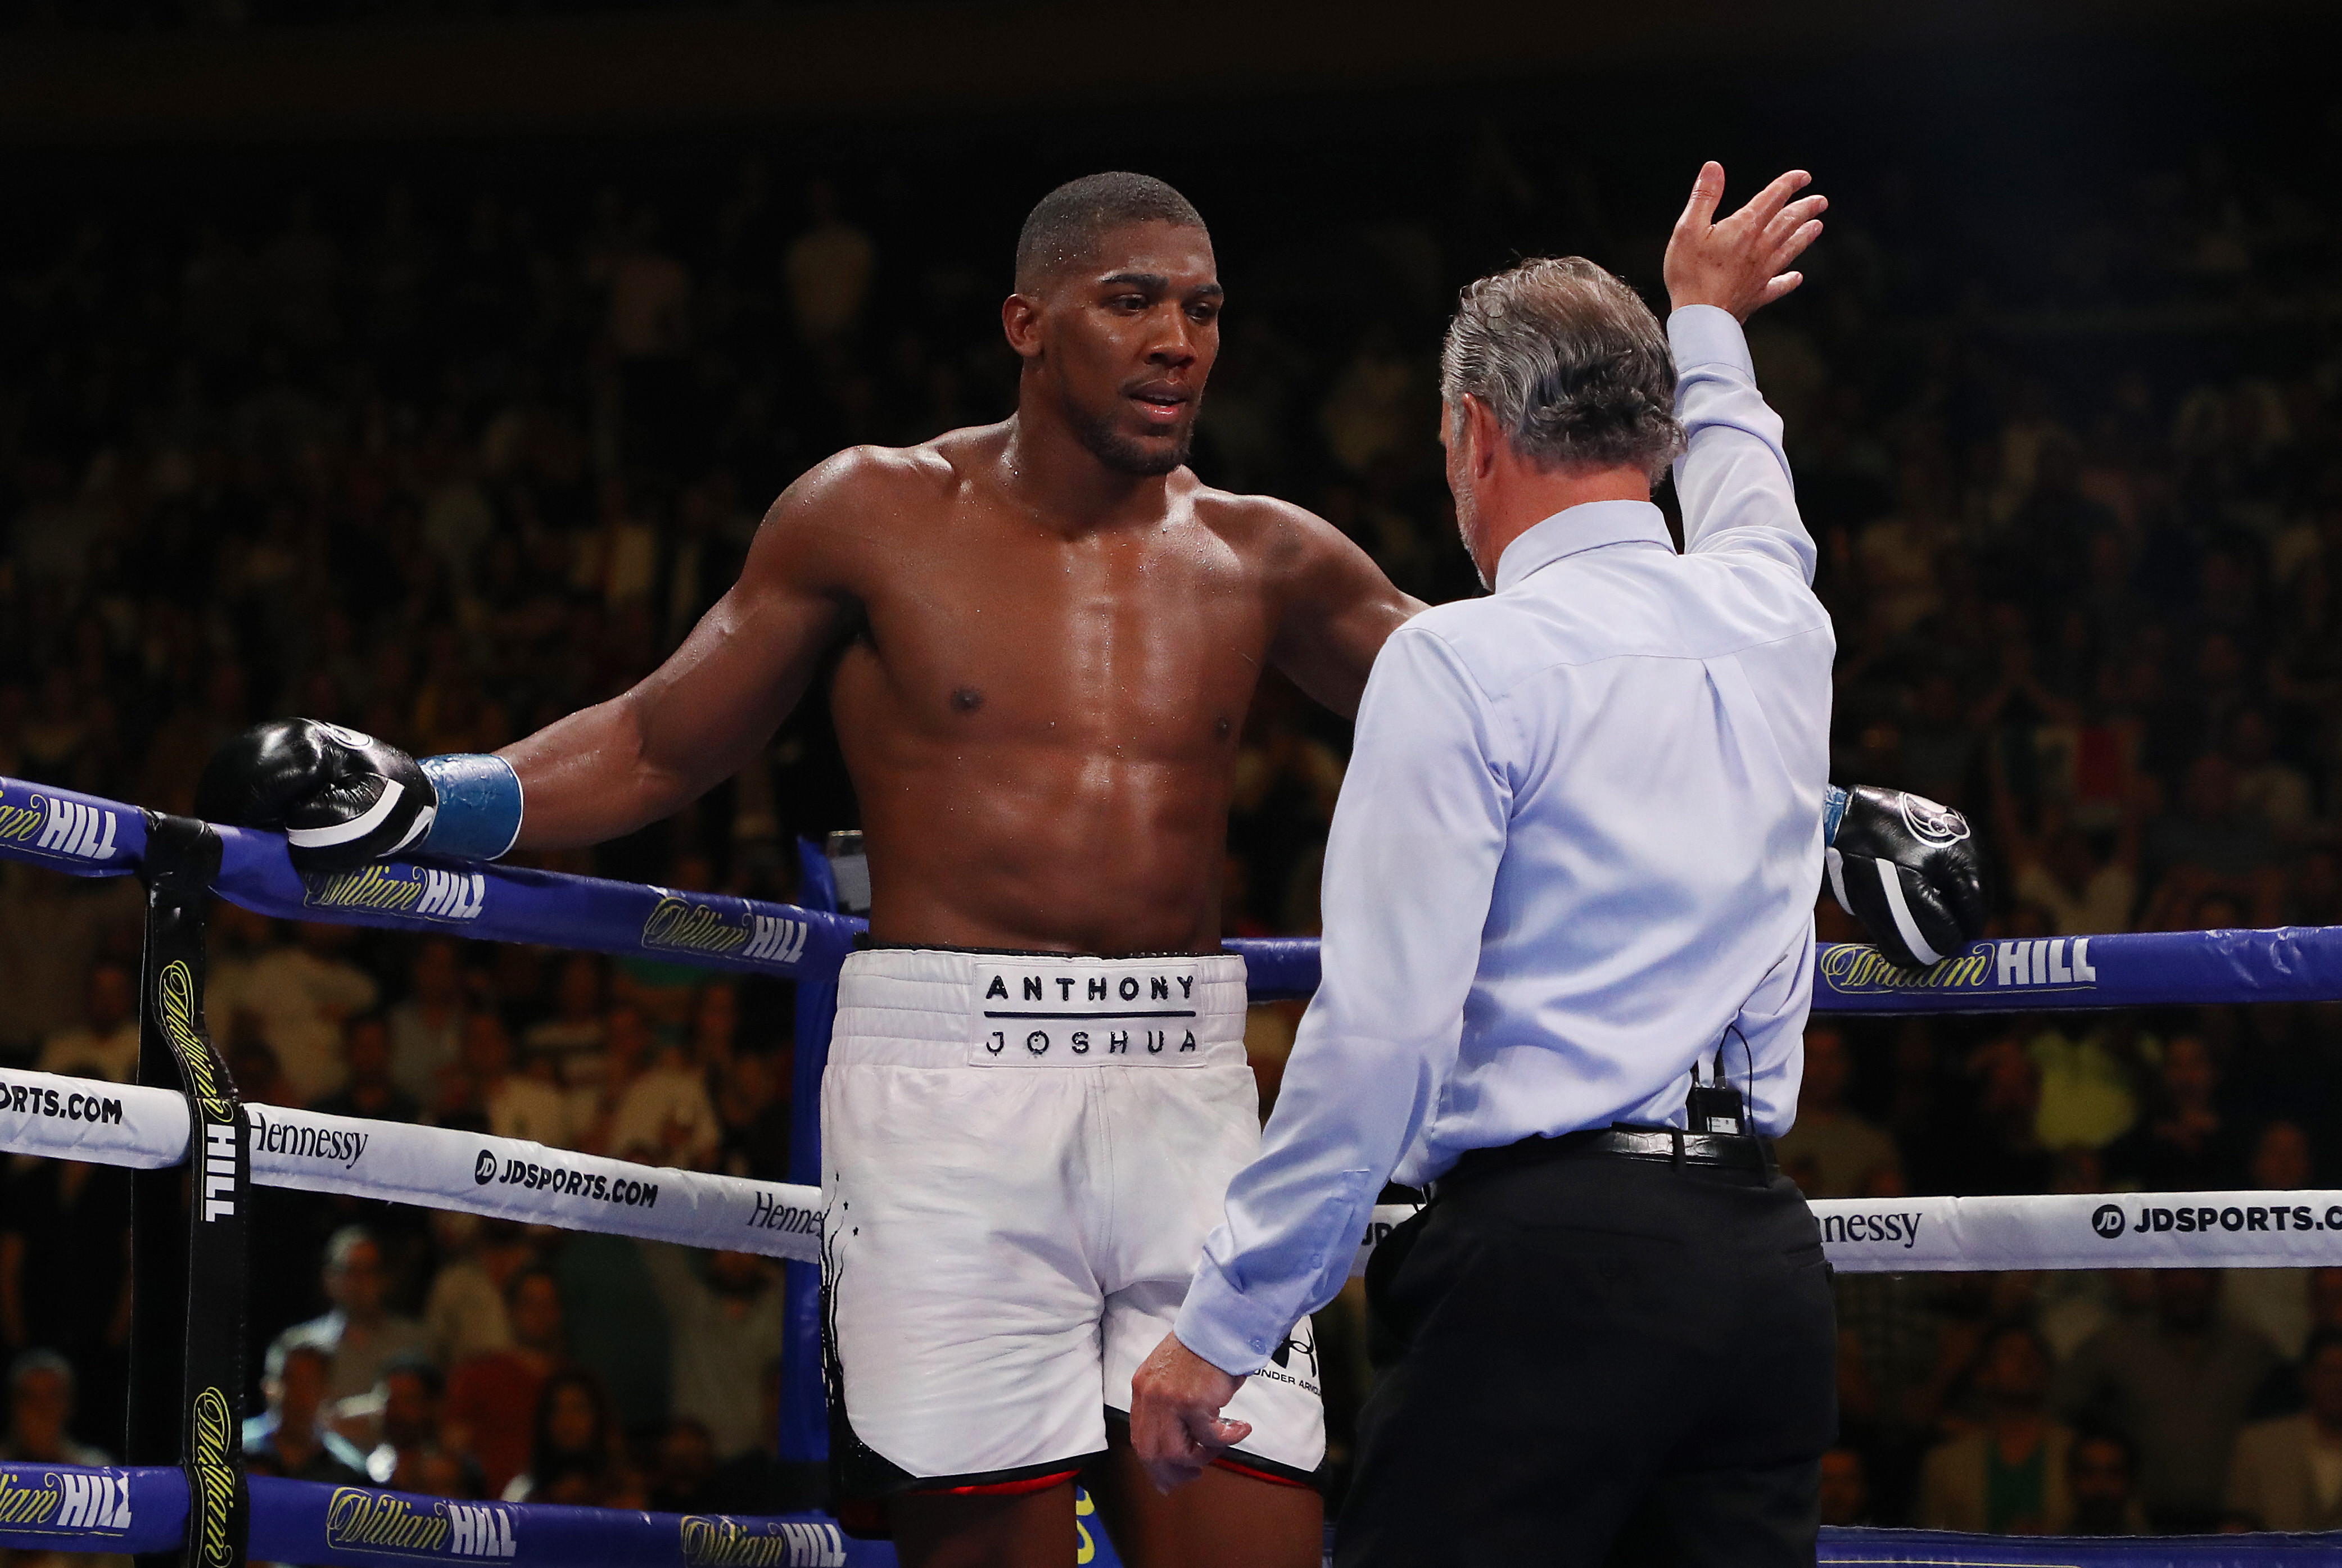 Anthony Joshua was stopped in the seventh round after being battered by Andy Ruiz Jr